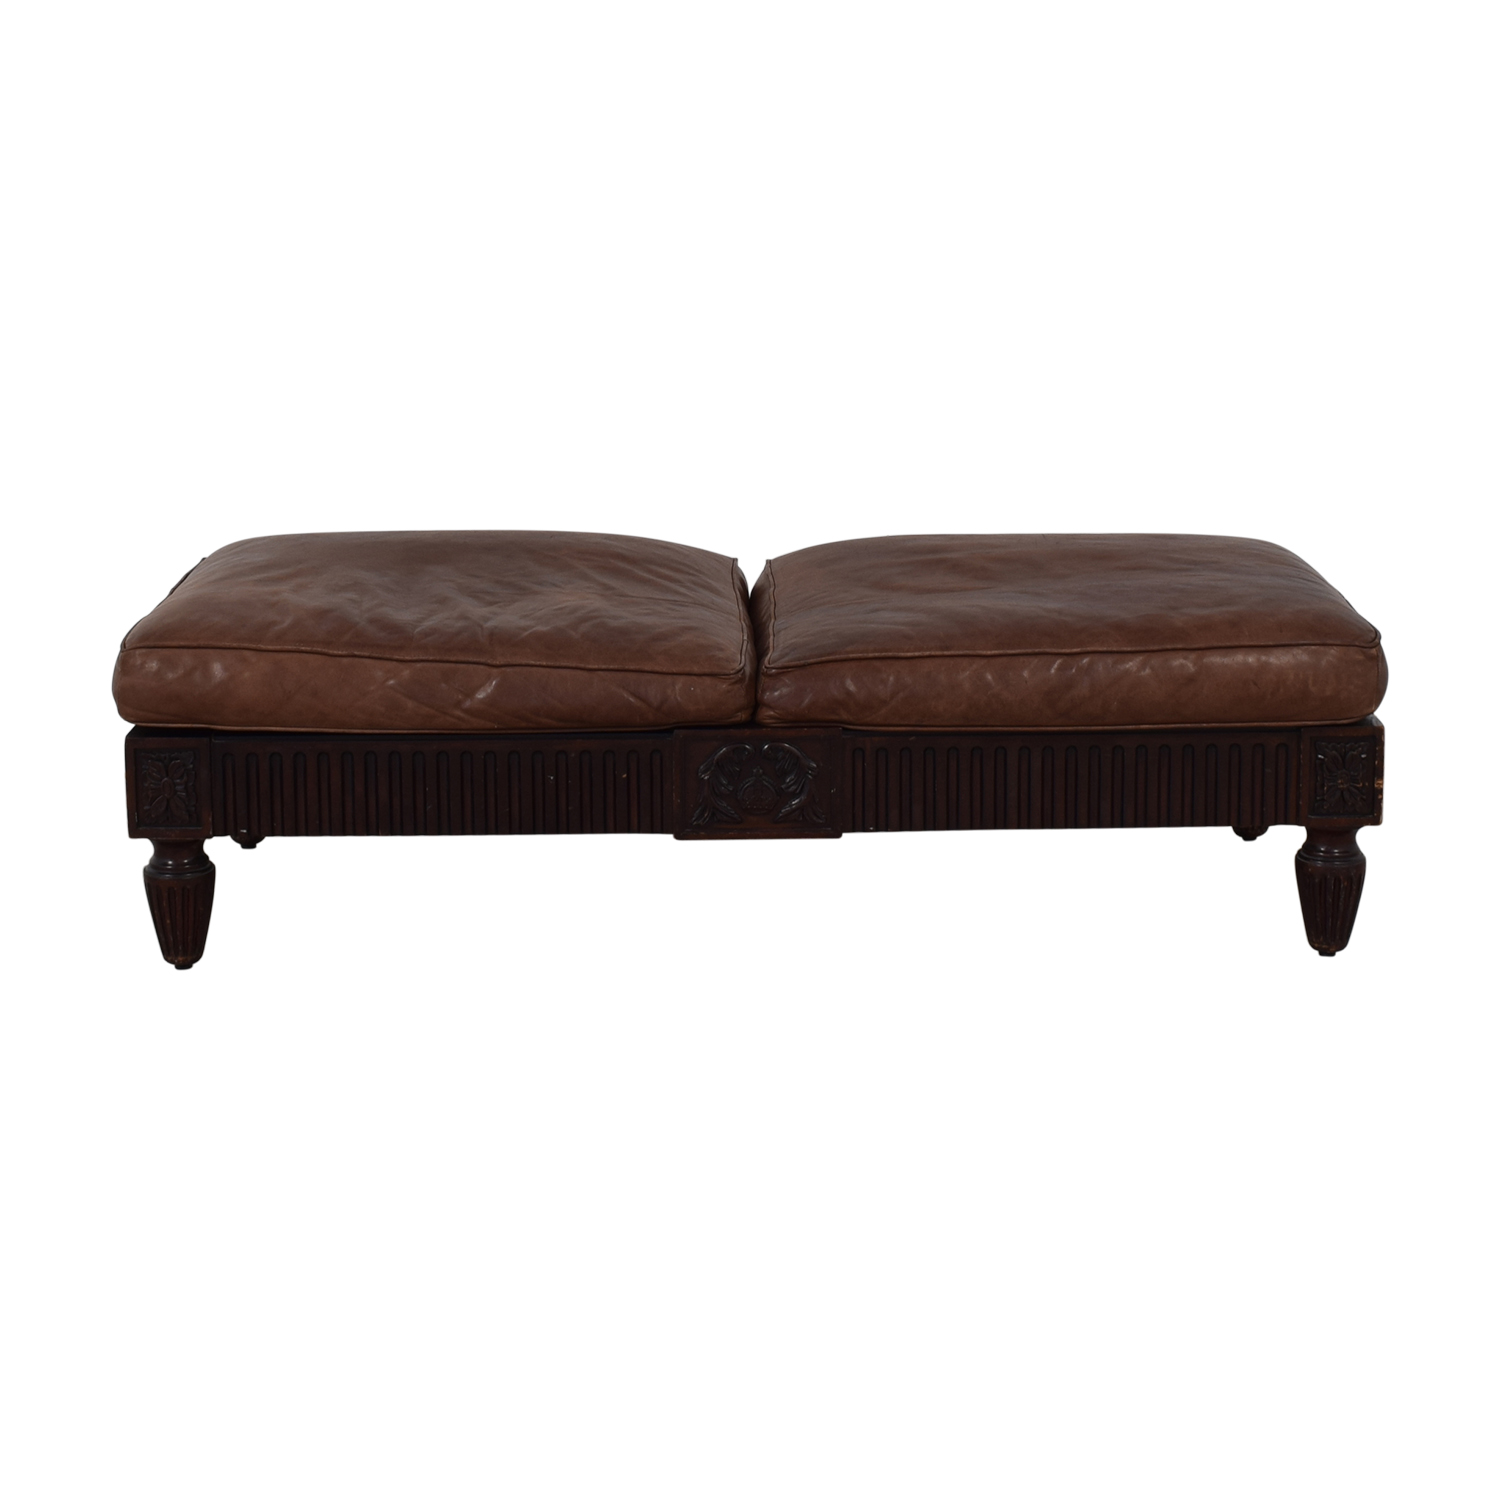 Ralph Lauren Home Ralph Lauren Home Brown Bench price